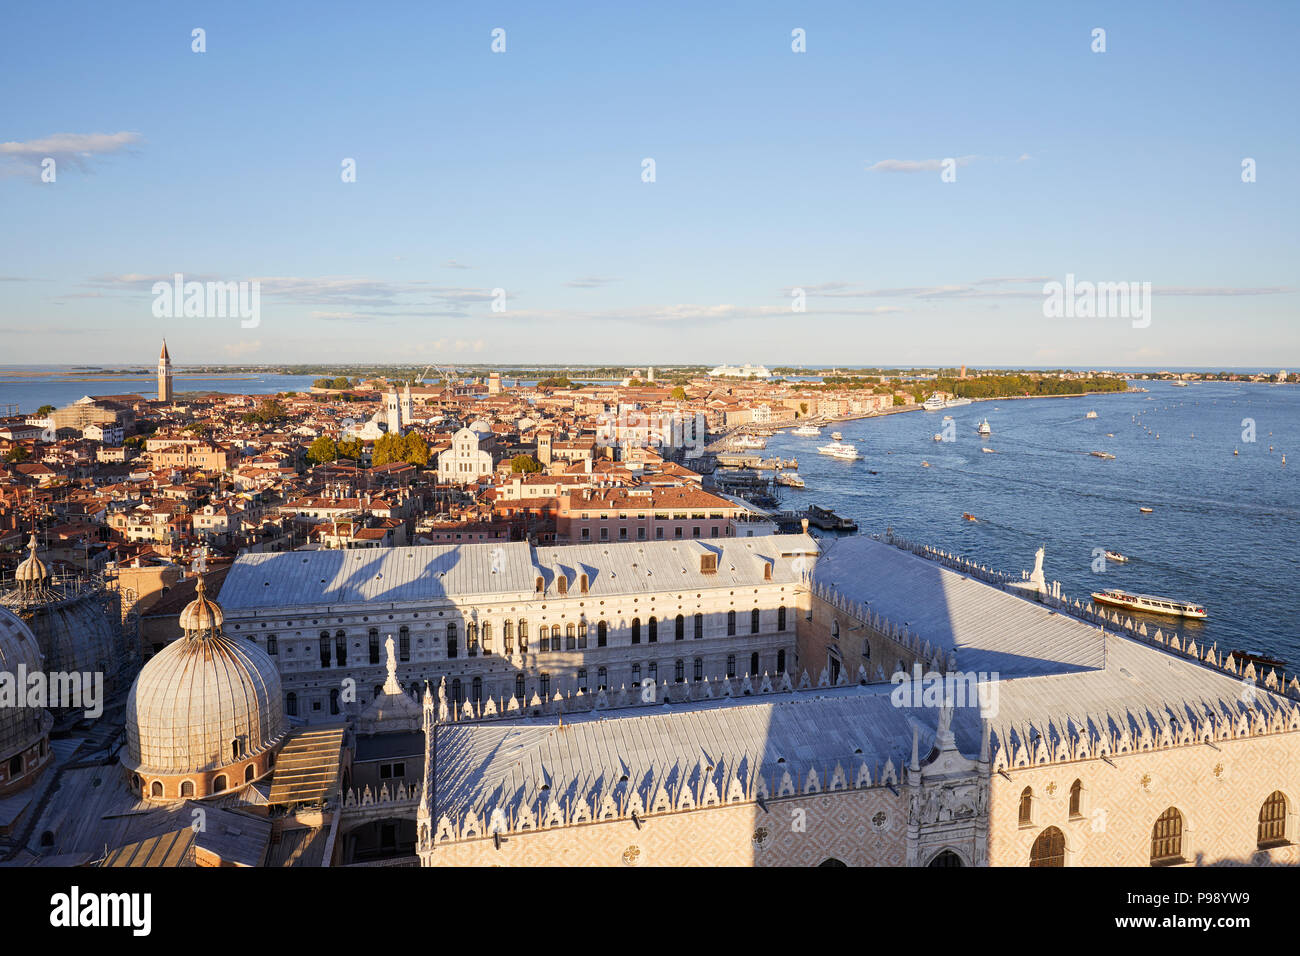 Aerial view of Venice before sunset, Italy - Stock Image